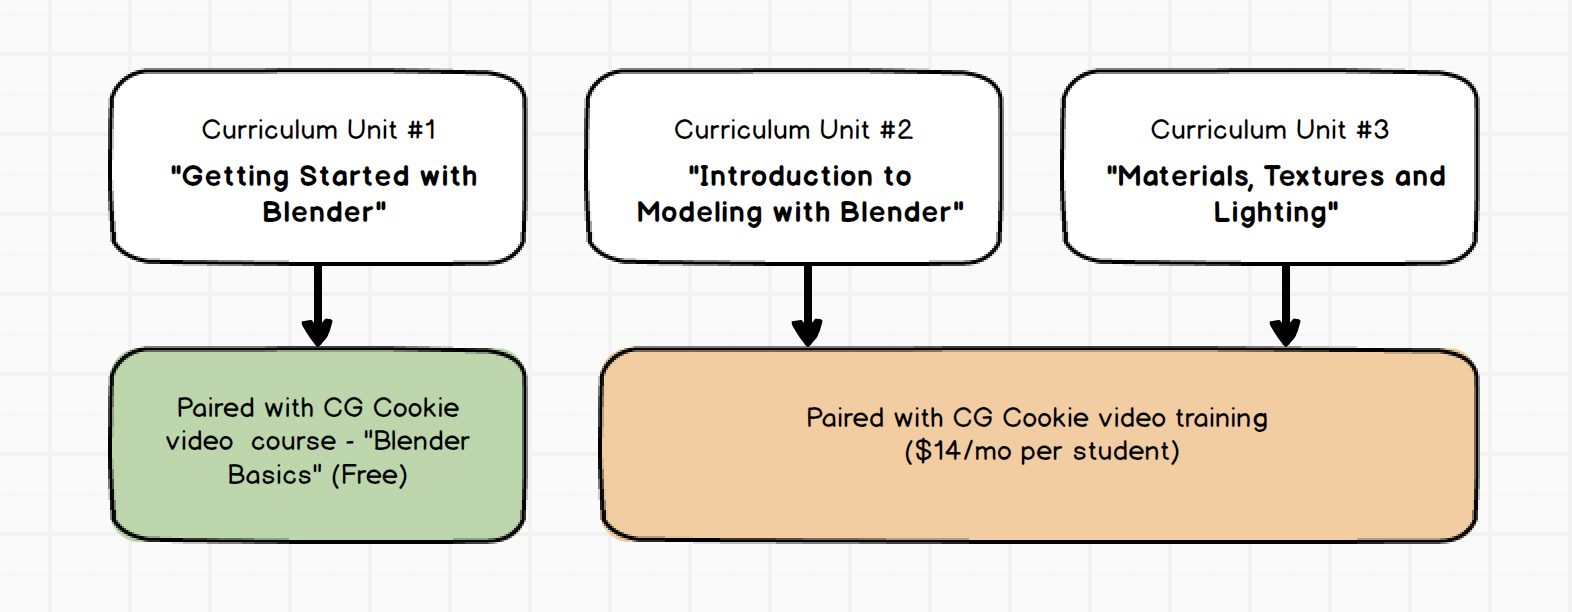 Free Curriculum for Teaching Blender 3D at School - CG Cookie